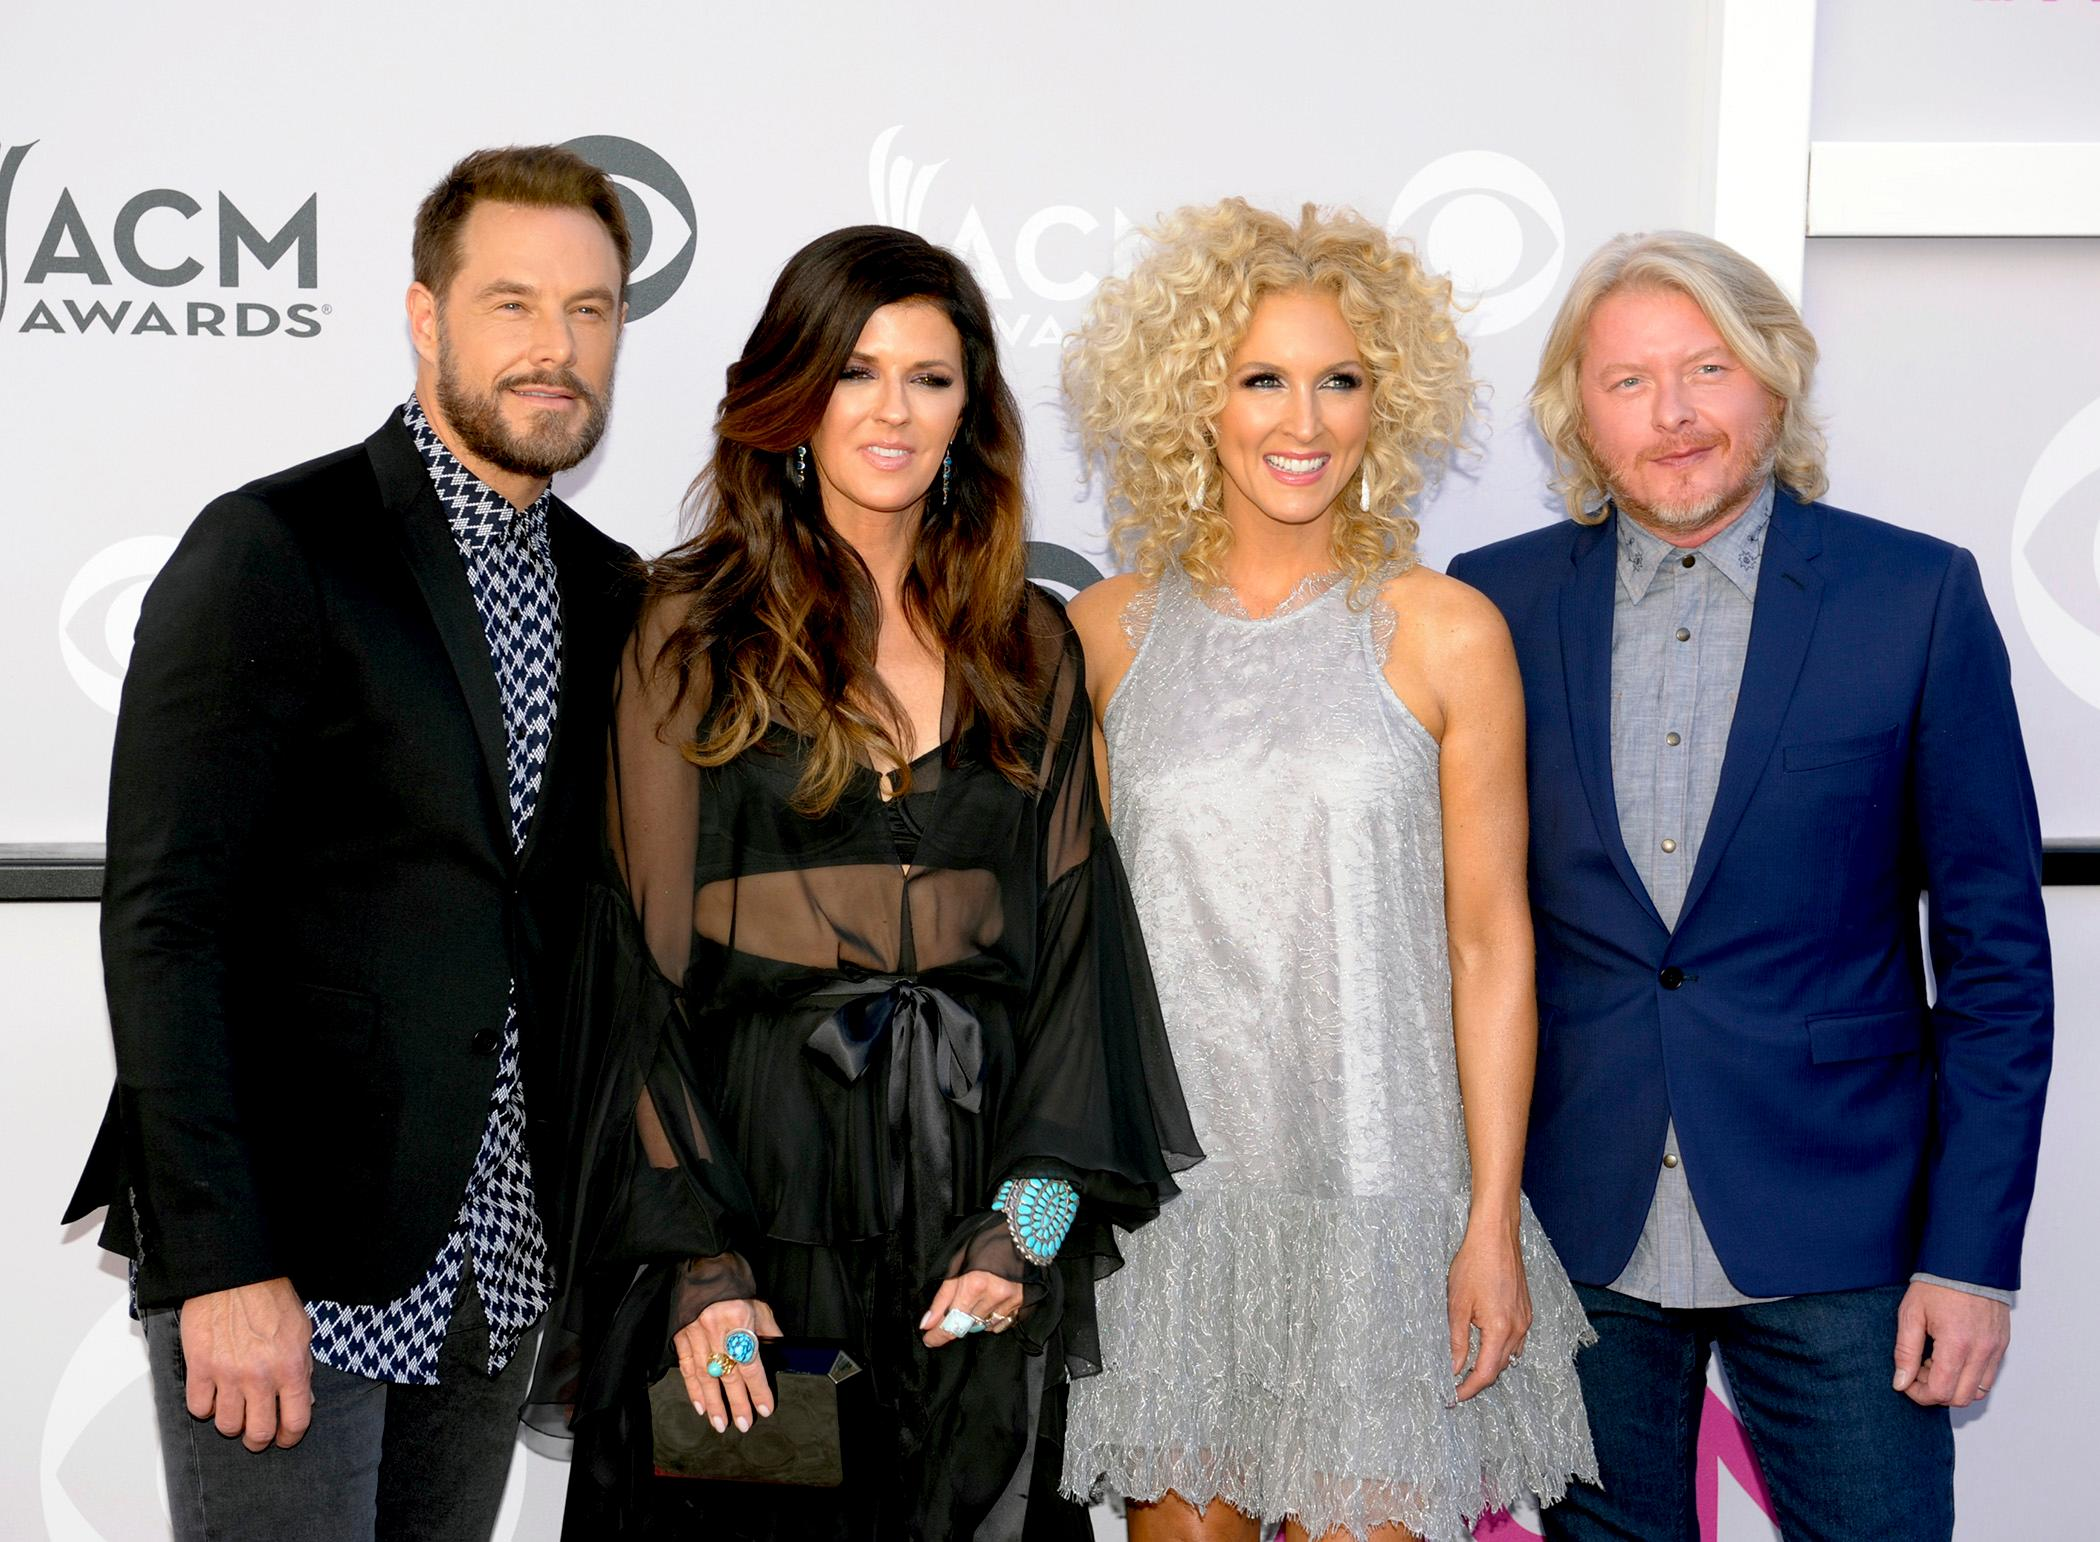 (left to right) Jimi Westbrook, Karen Fairchild, Kimberly Schlapman and Philip Sweet also know as Little Big Town and nominees for Vocal Group of the Year walk the Academy of Country Music Awards red carpet at T-Mobile Arena. Sunday, April 2, 2017. (Glenn Pinkerton/ Las Vegas News Bureau)